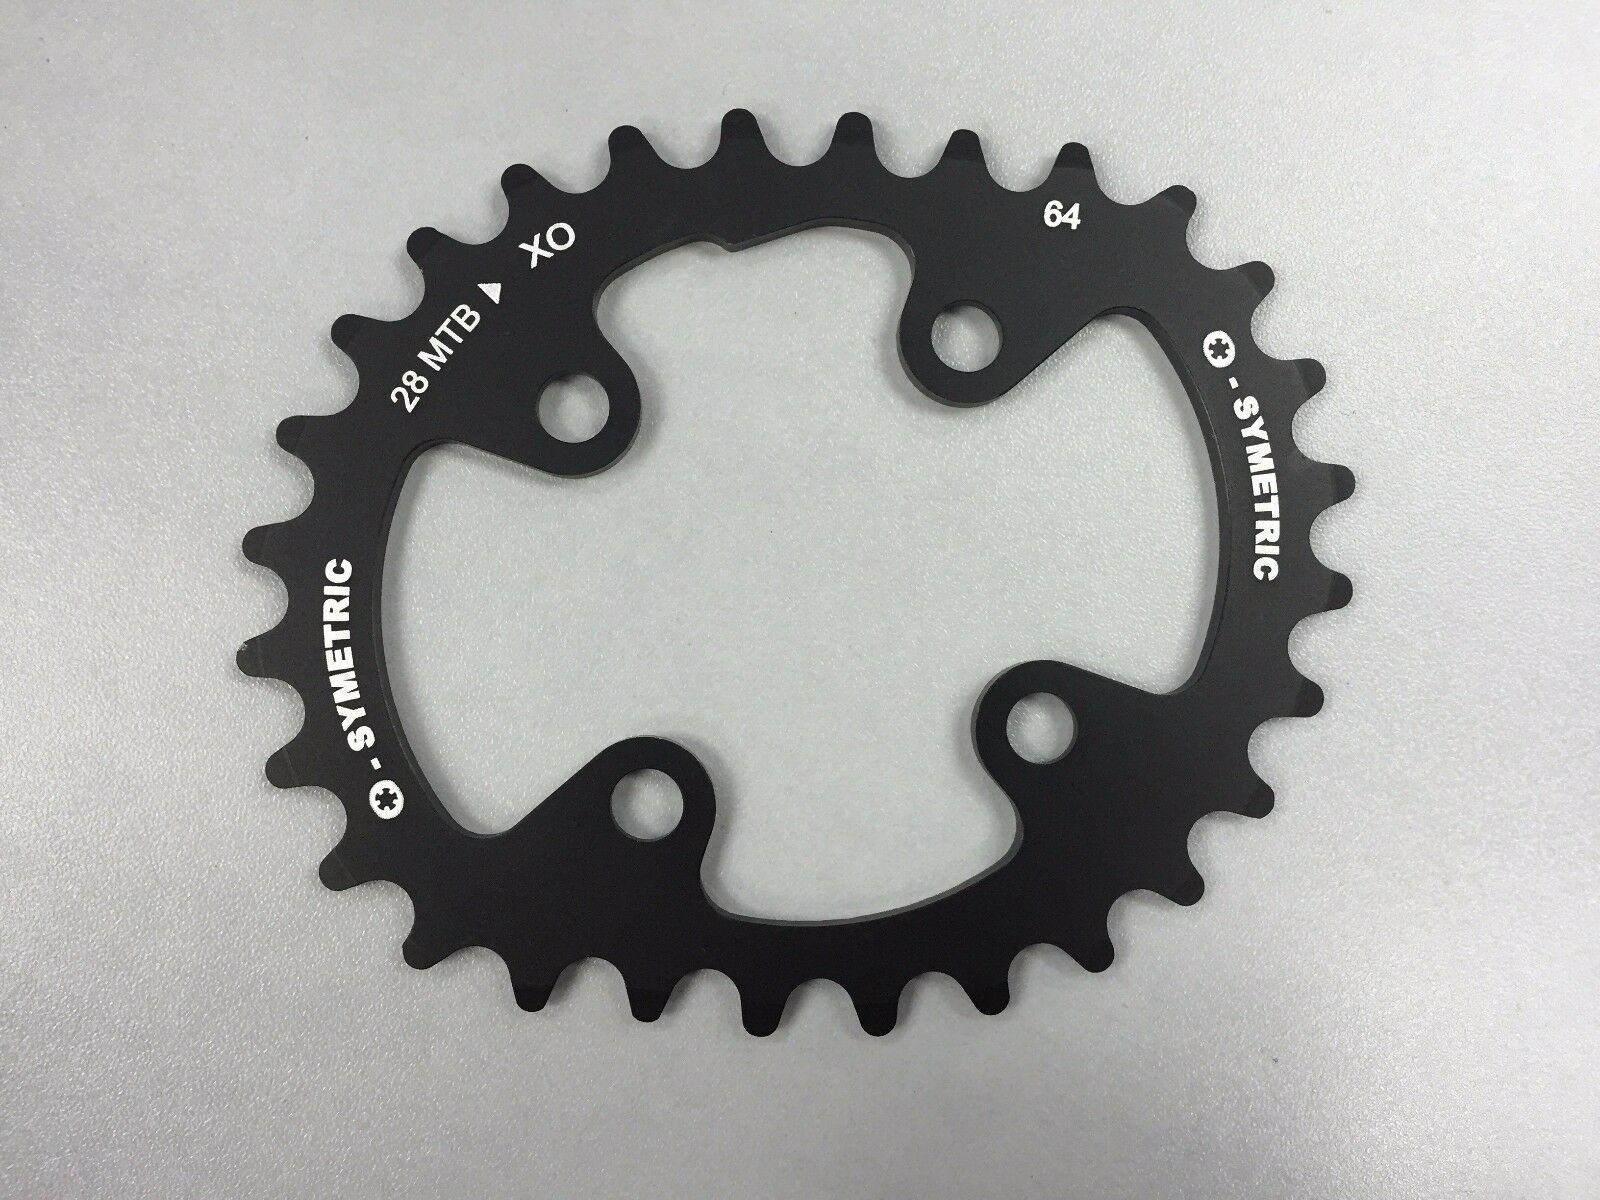 Osymetric SRAMX0 28T (BCD 64mm x 4 Bolts) Bicycle MTB ChainRing